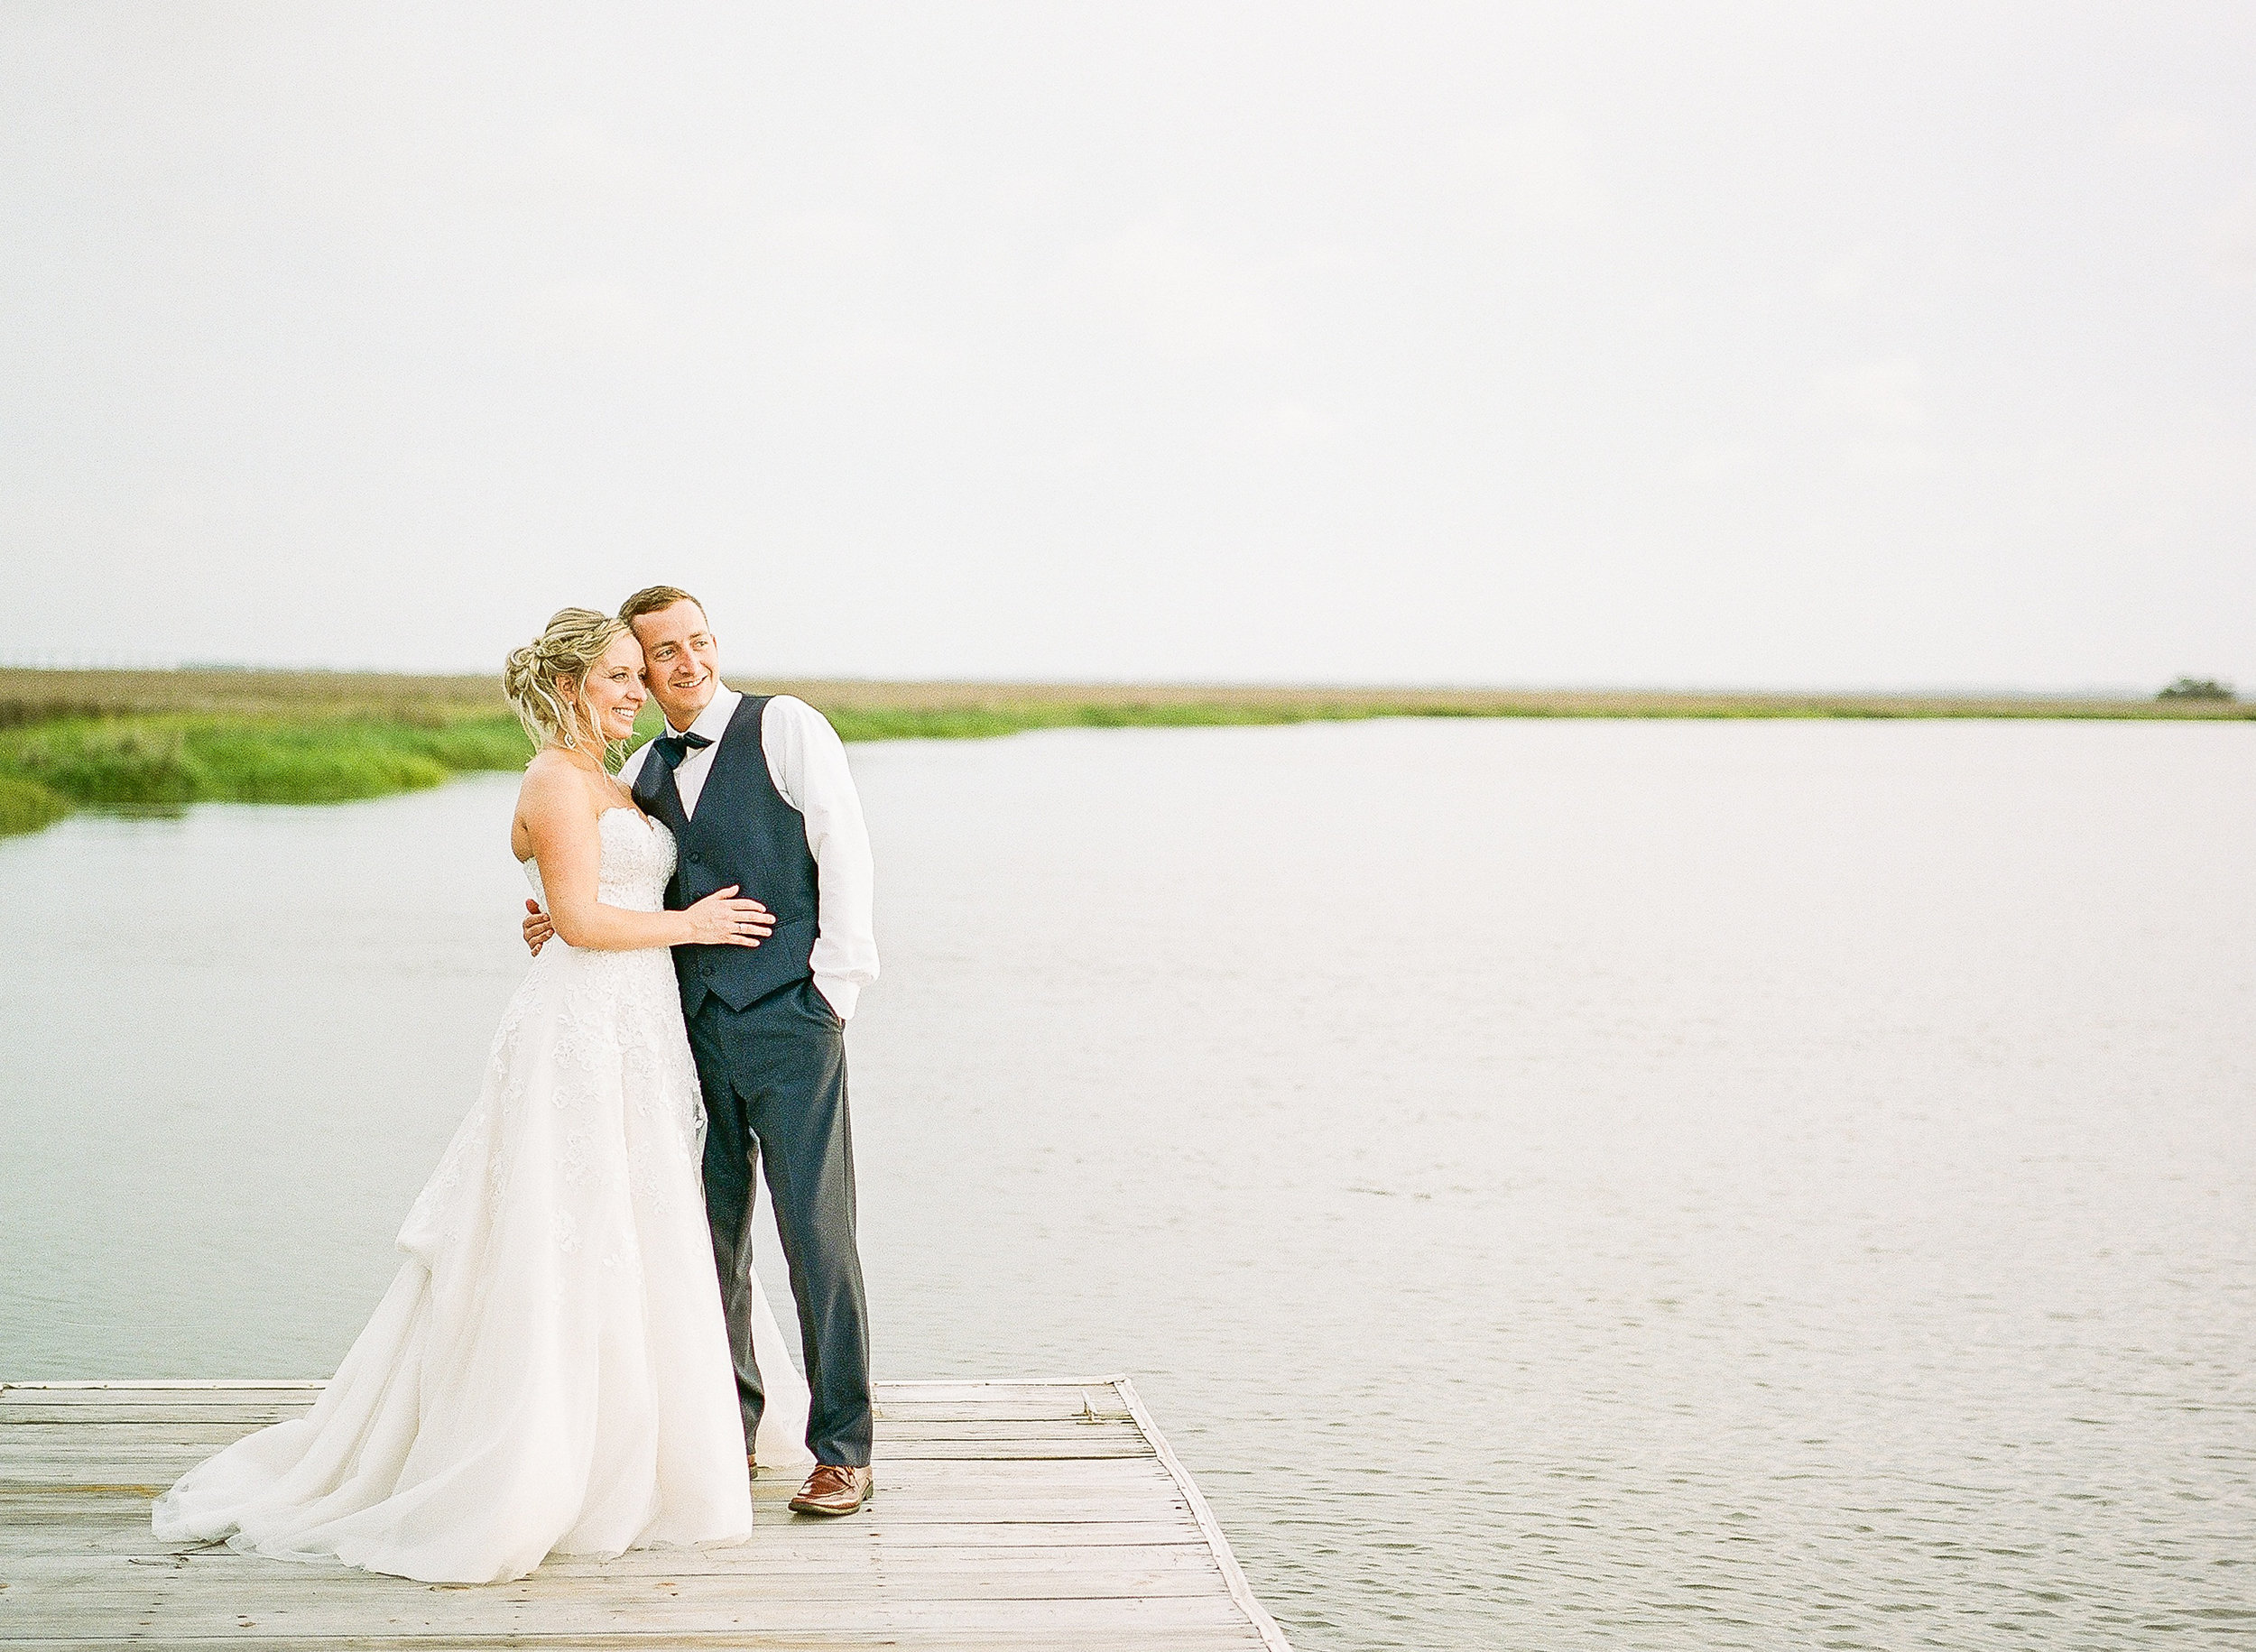 savannah-bridal-shop-i-and-b-couple-gretchen-and-alex-fun-and-unique-tropical-wedding-at-captains-bluff-st-simons-island-wedding-marianne-lucille-photography-49.jpg